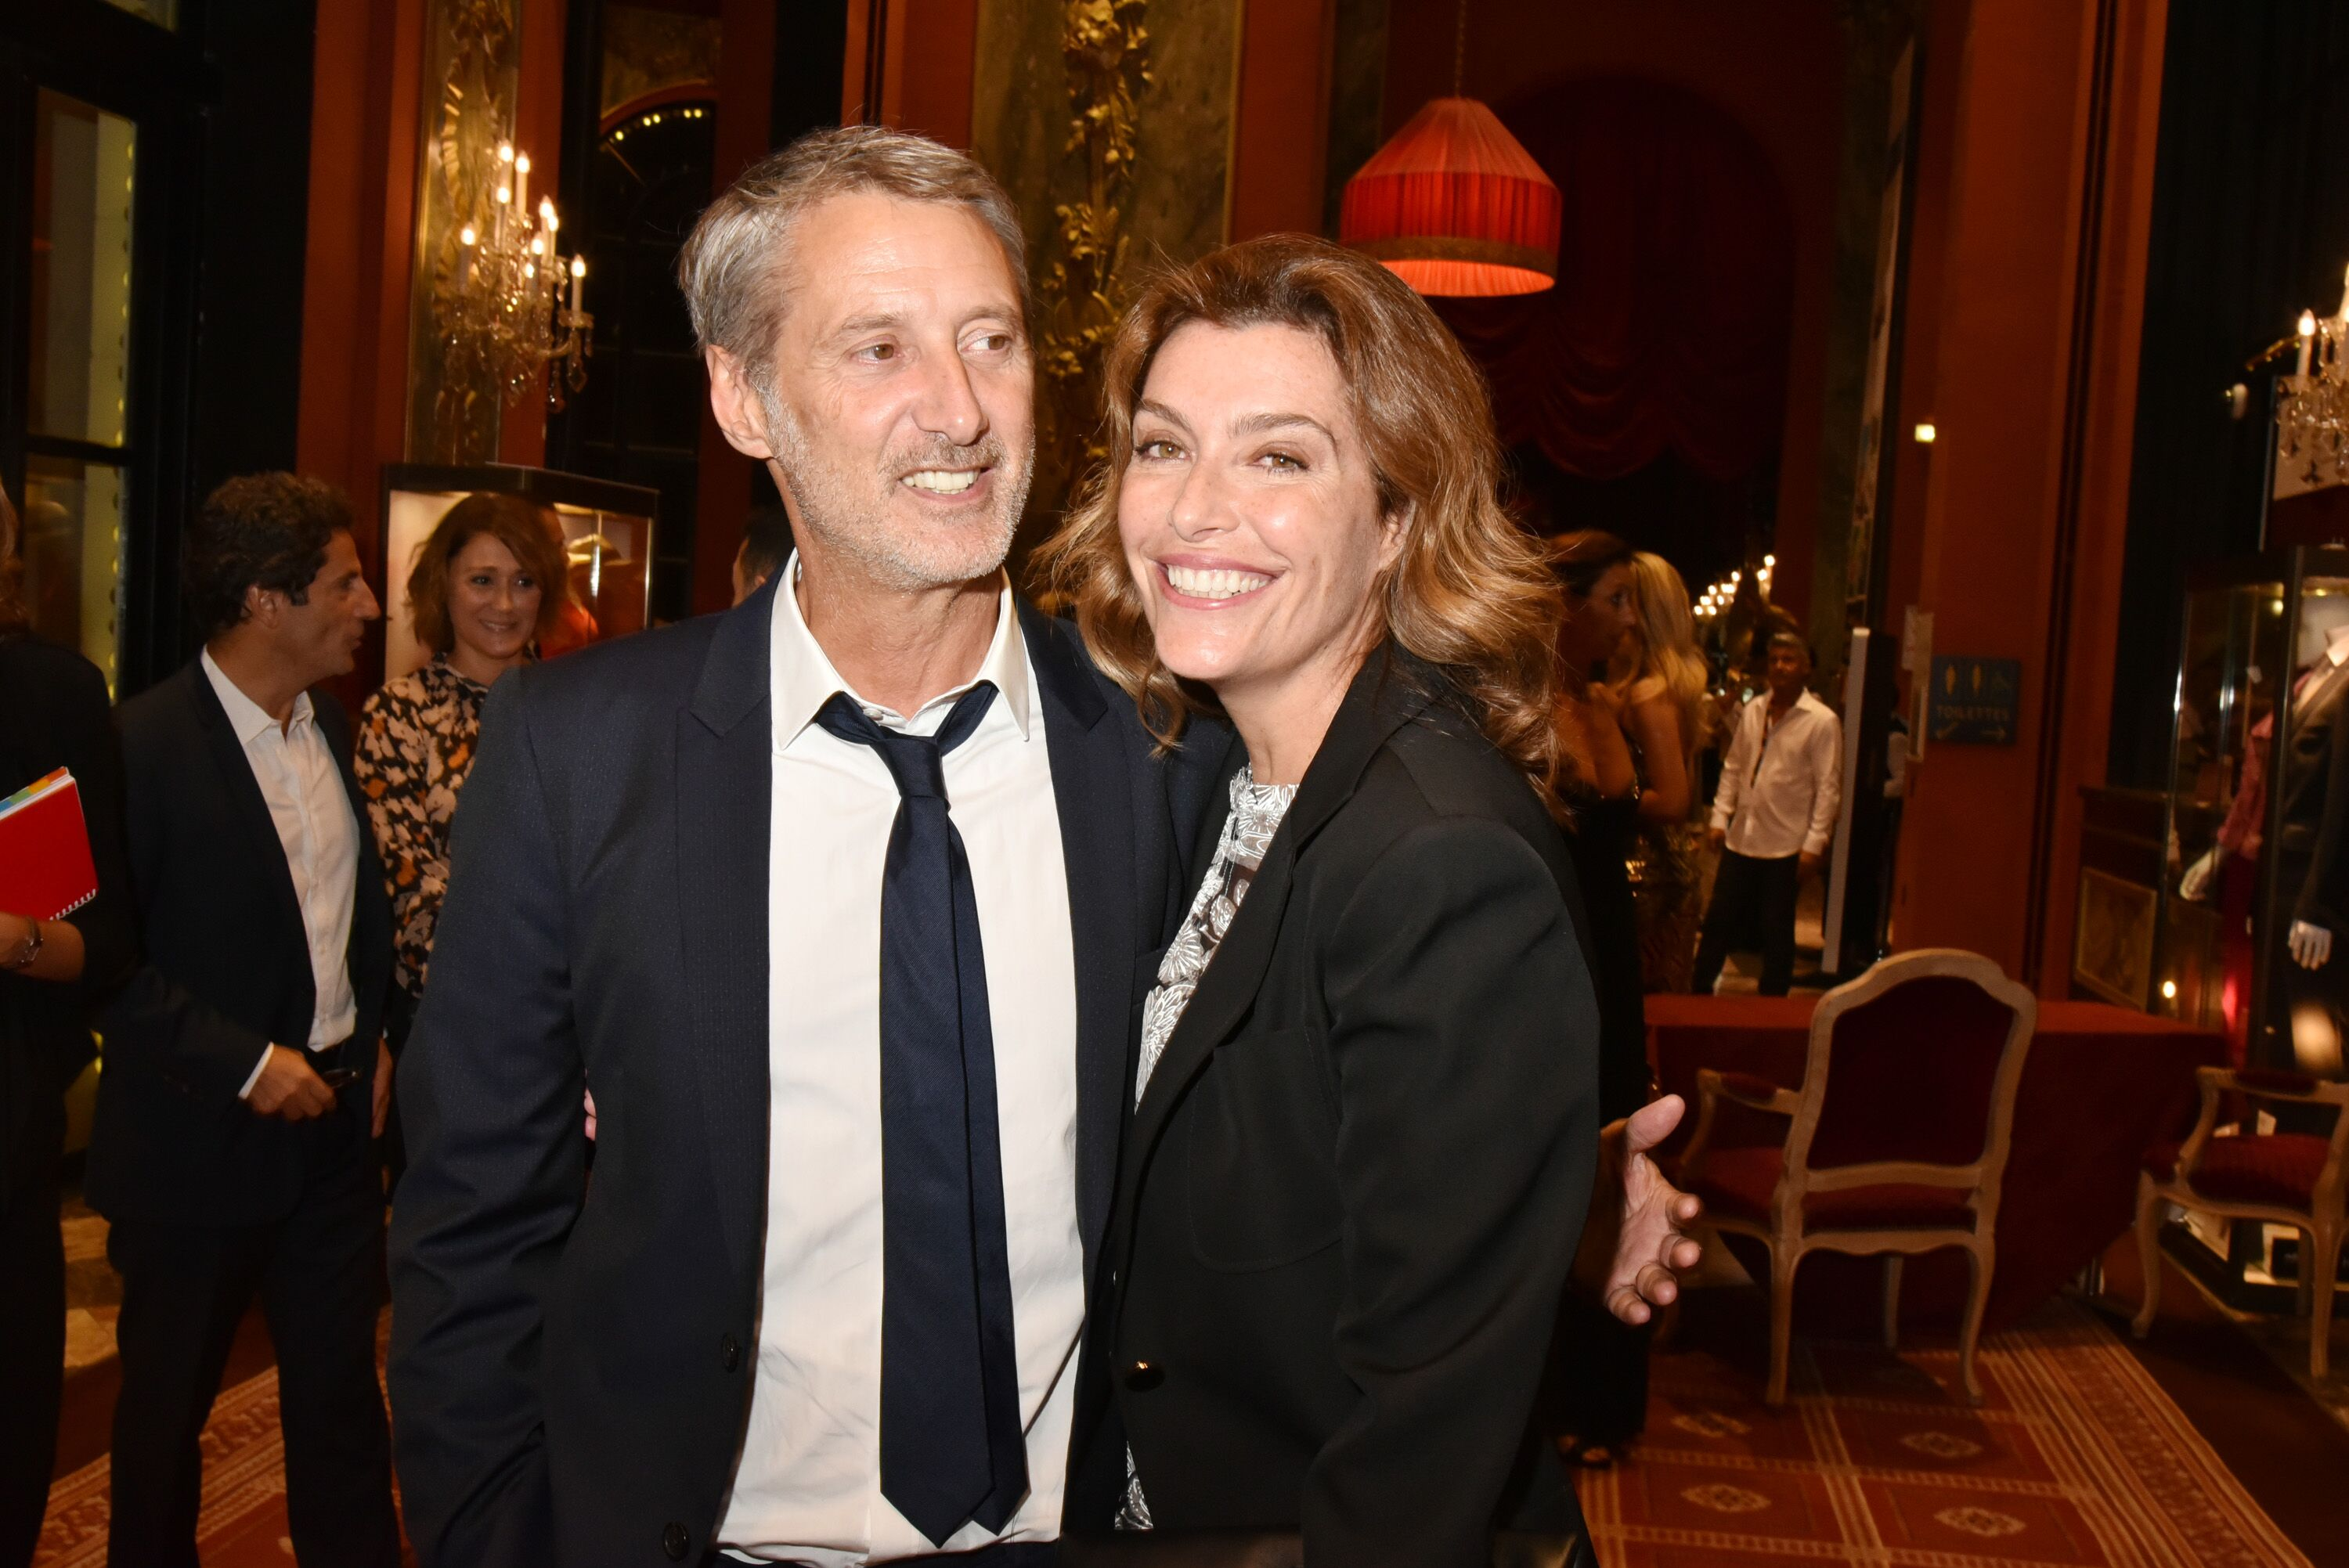 Antoine de Caunes et Daphne Roulier au CID le 2 septembre 2016 à Deauville, France. | Photo : Getty Images